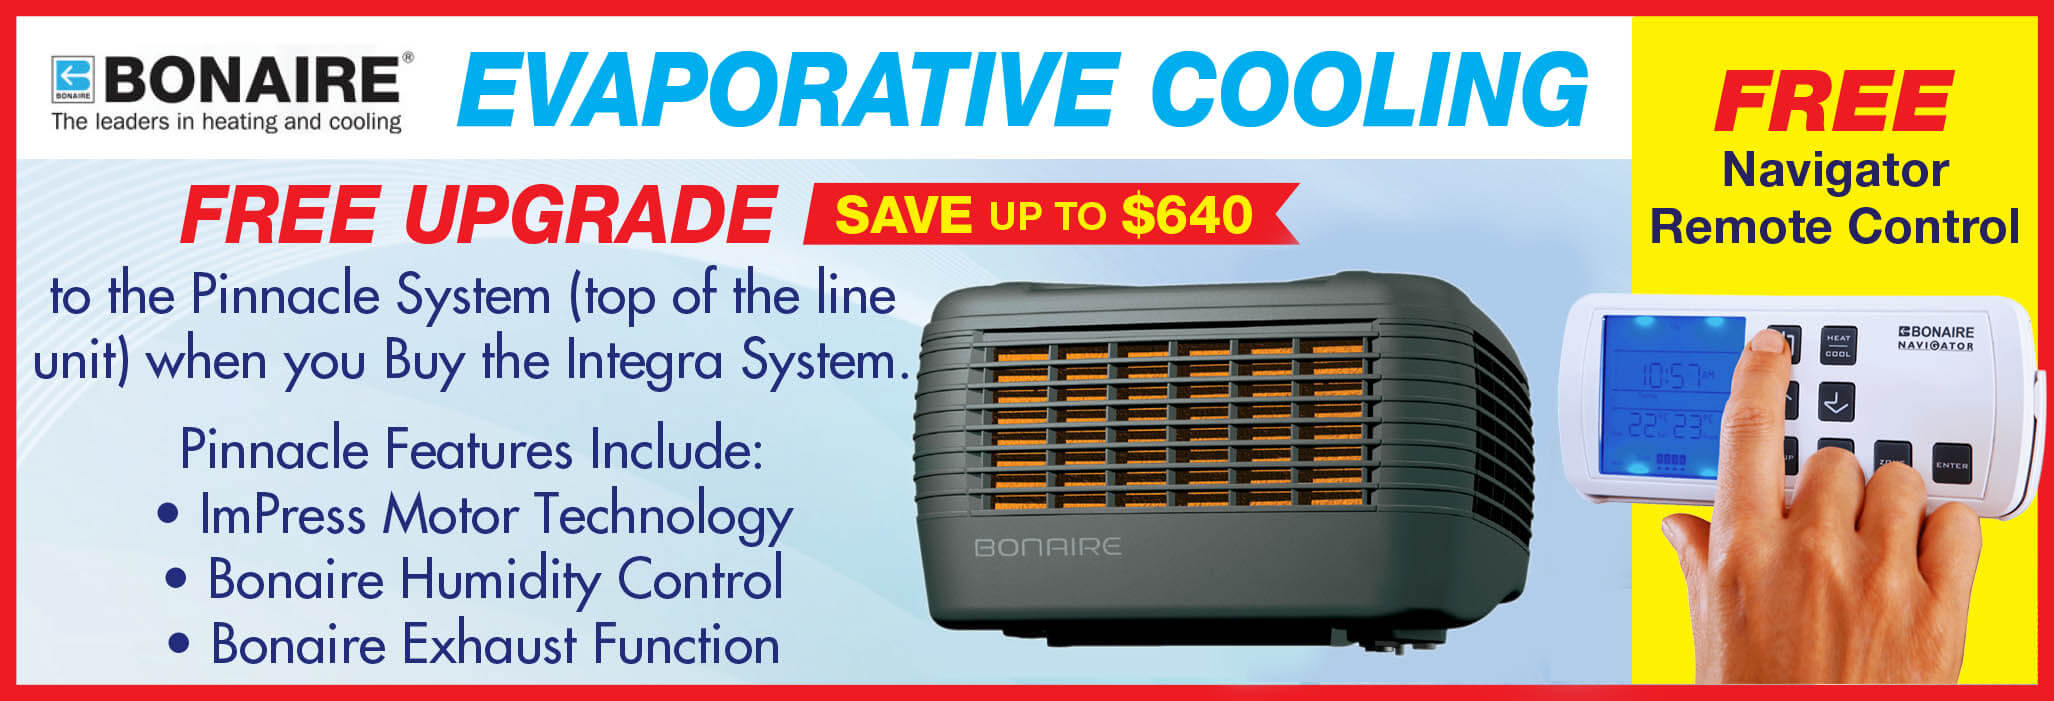 Bonaire Evaporative Cooling Replacement Offer - Spring 2021